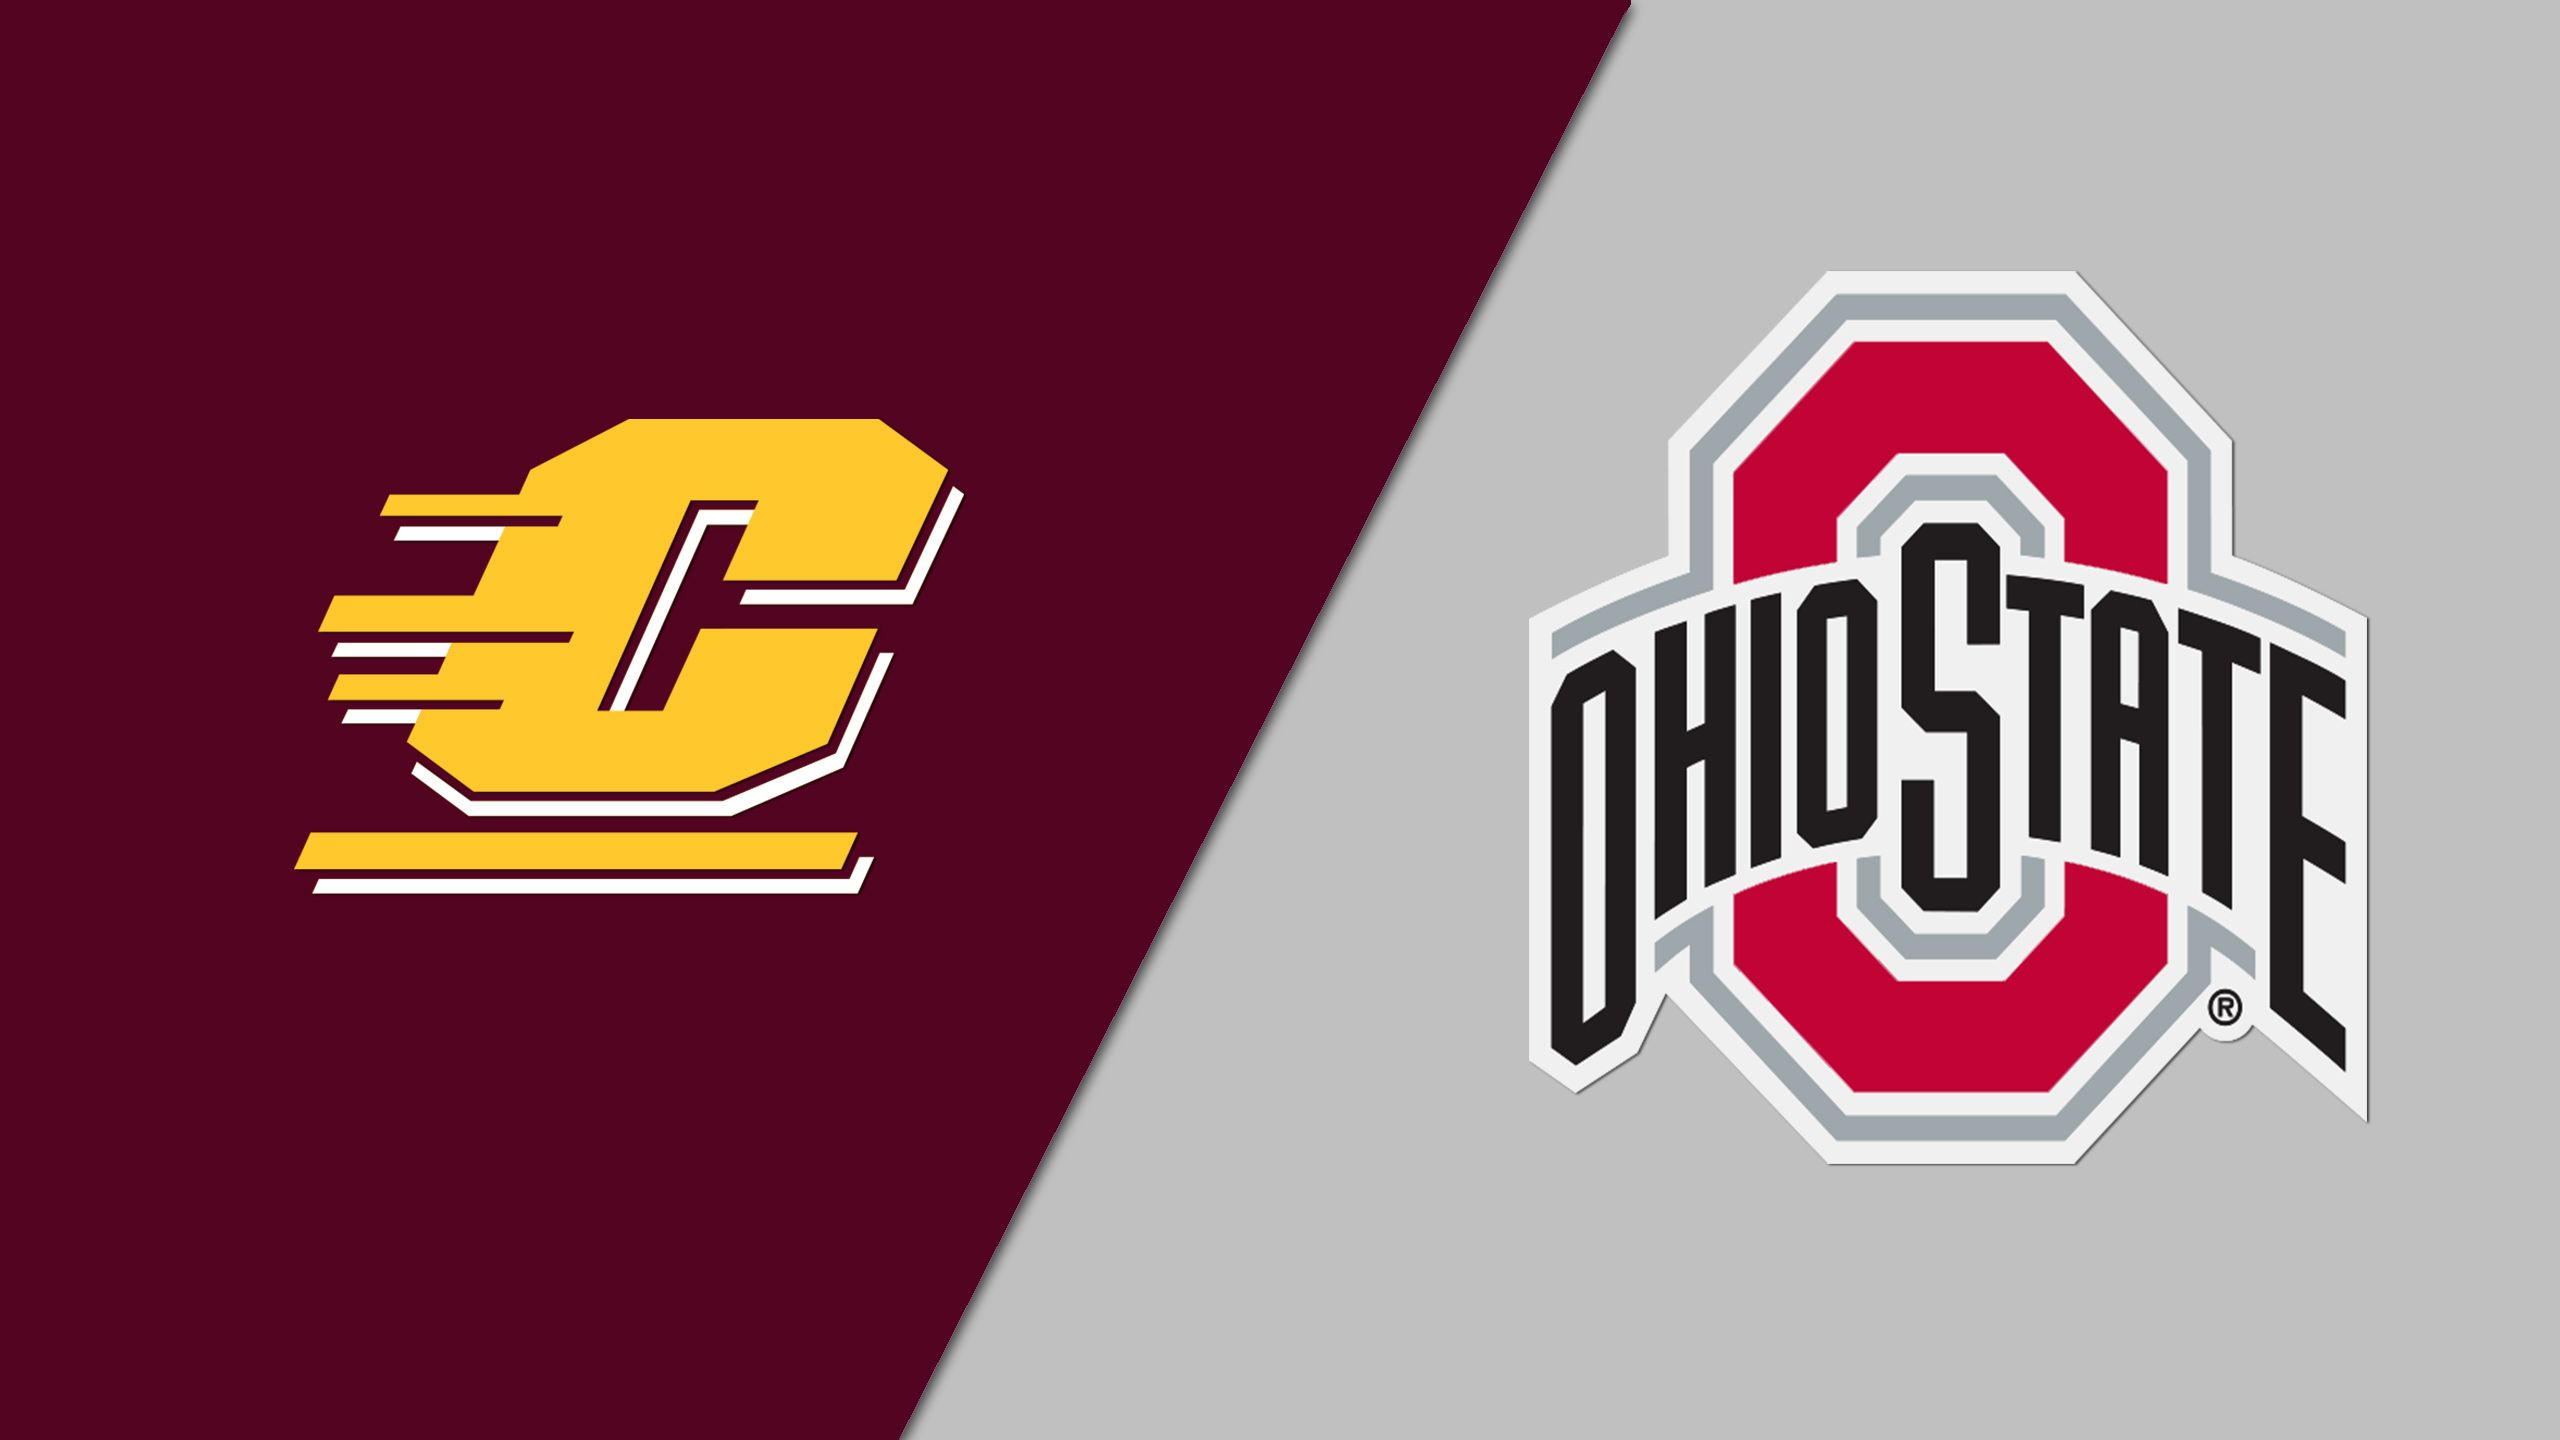 #11 Central Michigan vs. #3 Ohio State (Second Round) (NCAA Women's Basketball Championship)